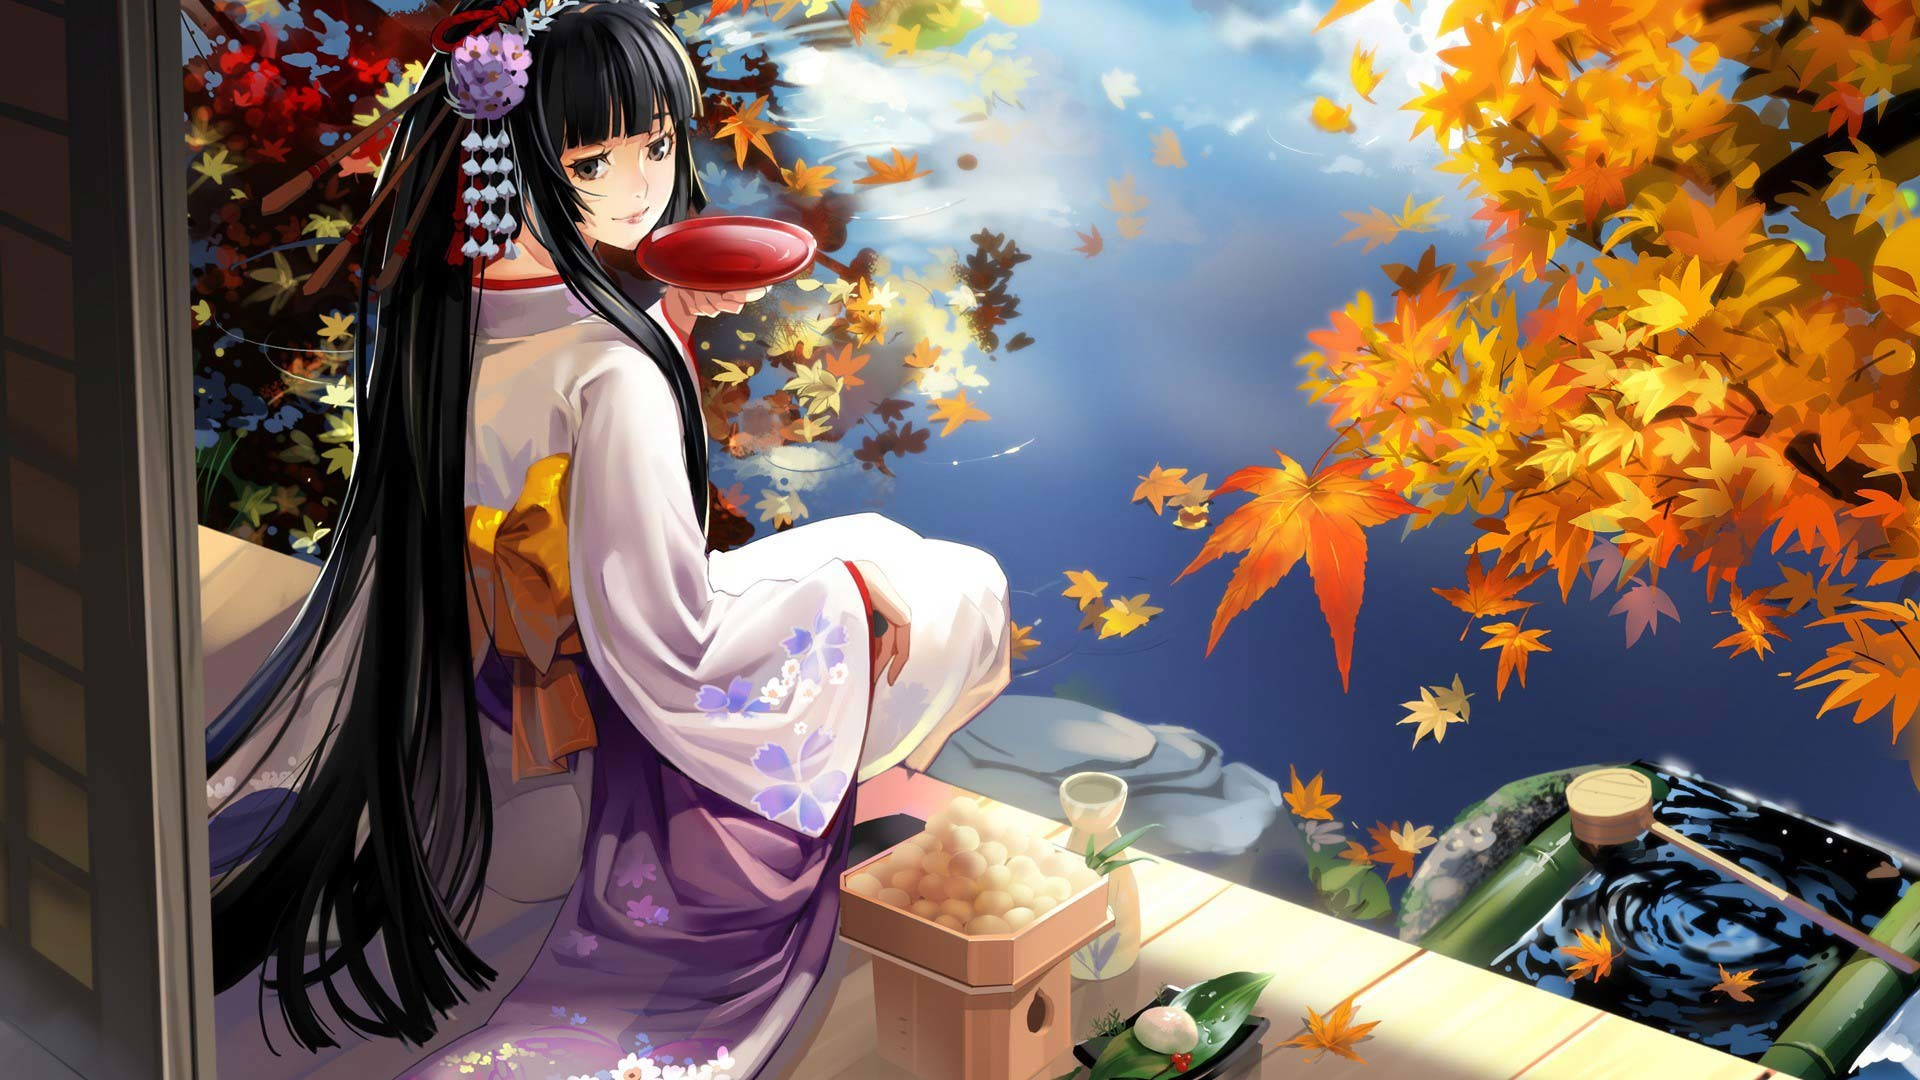 1600x2844 Anime Wallpaper Hd Android Free Download Cute Phone